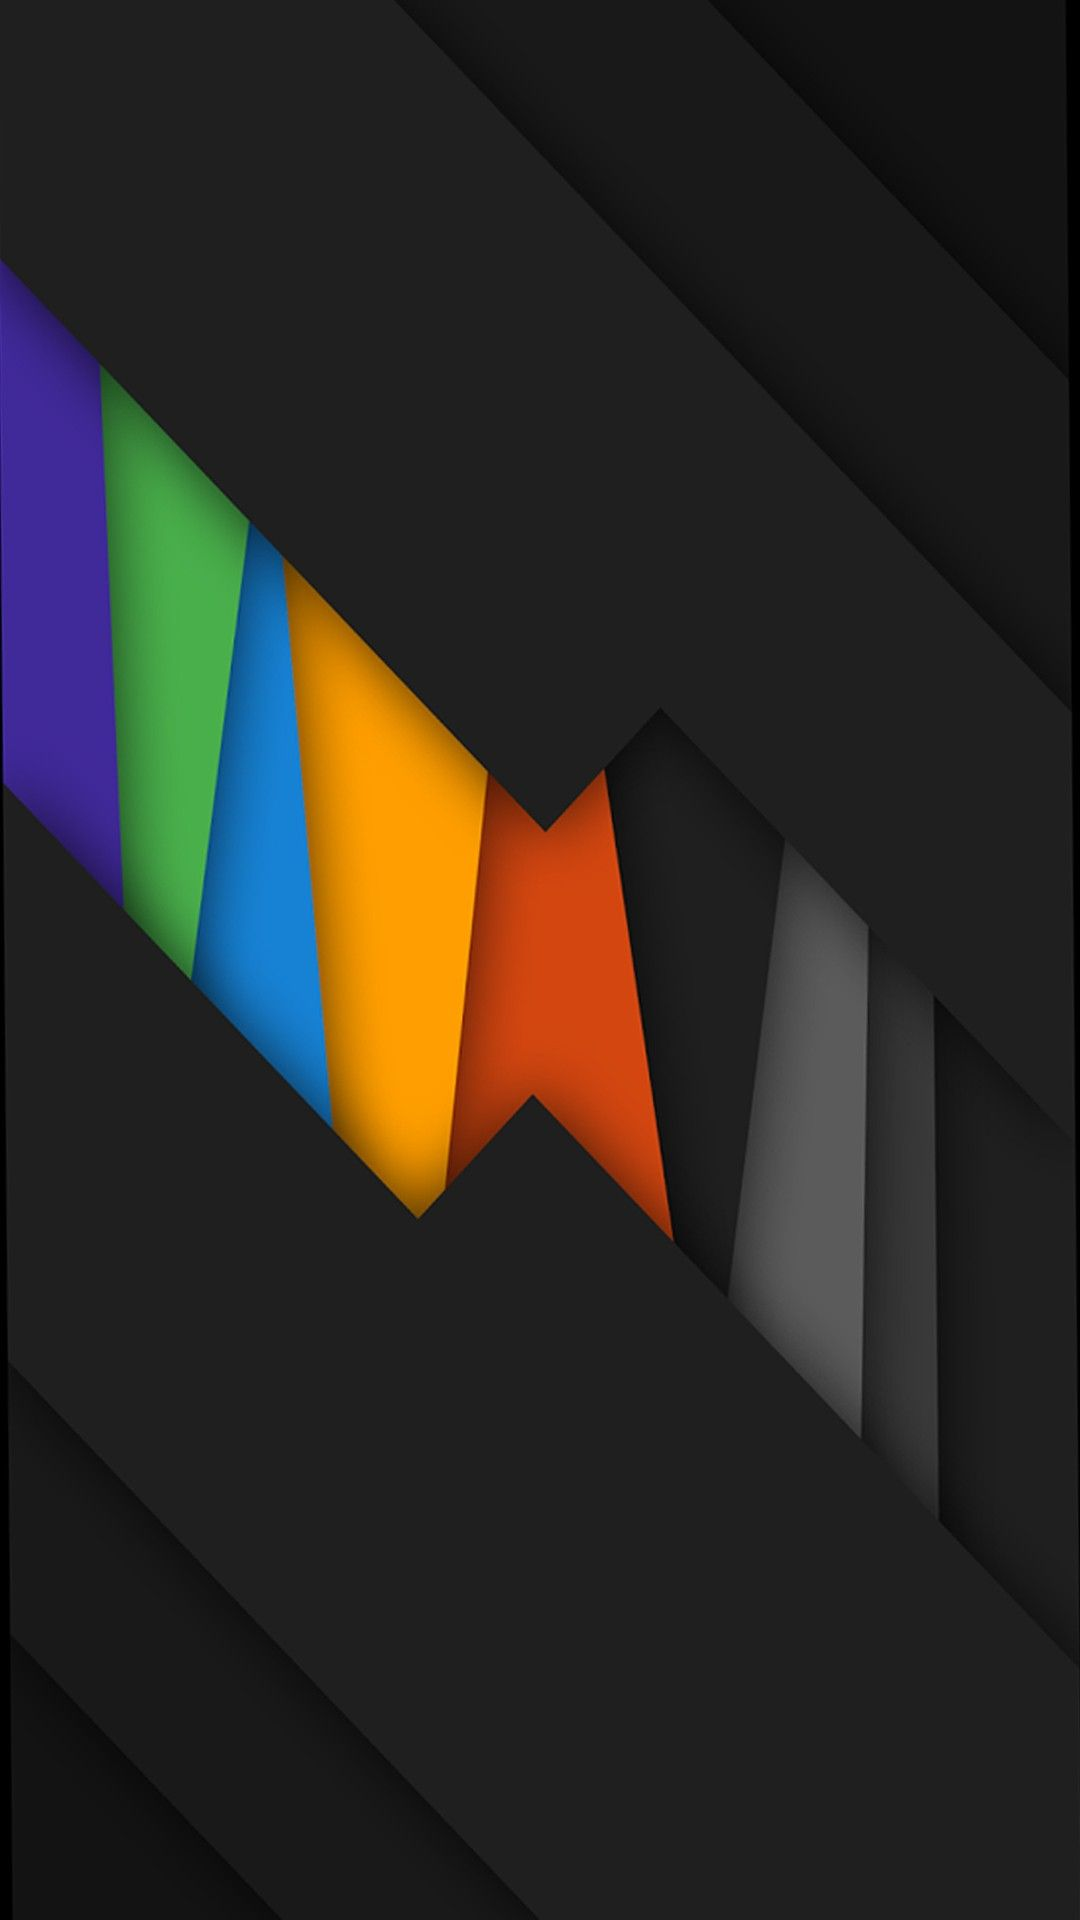 Black Rainbow Colors Abstract Best Wallpapers Android Islamic Wallpaper Android Wallpaper